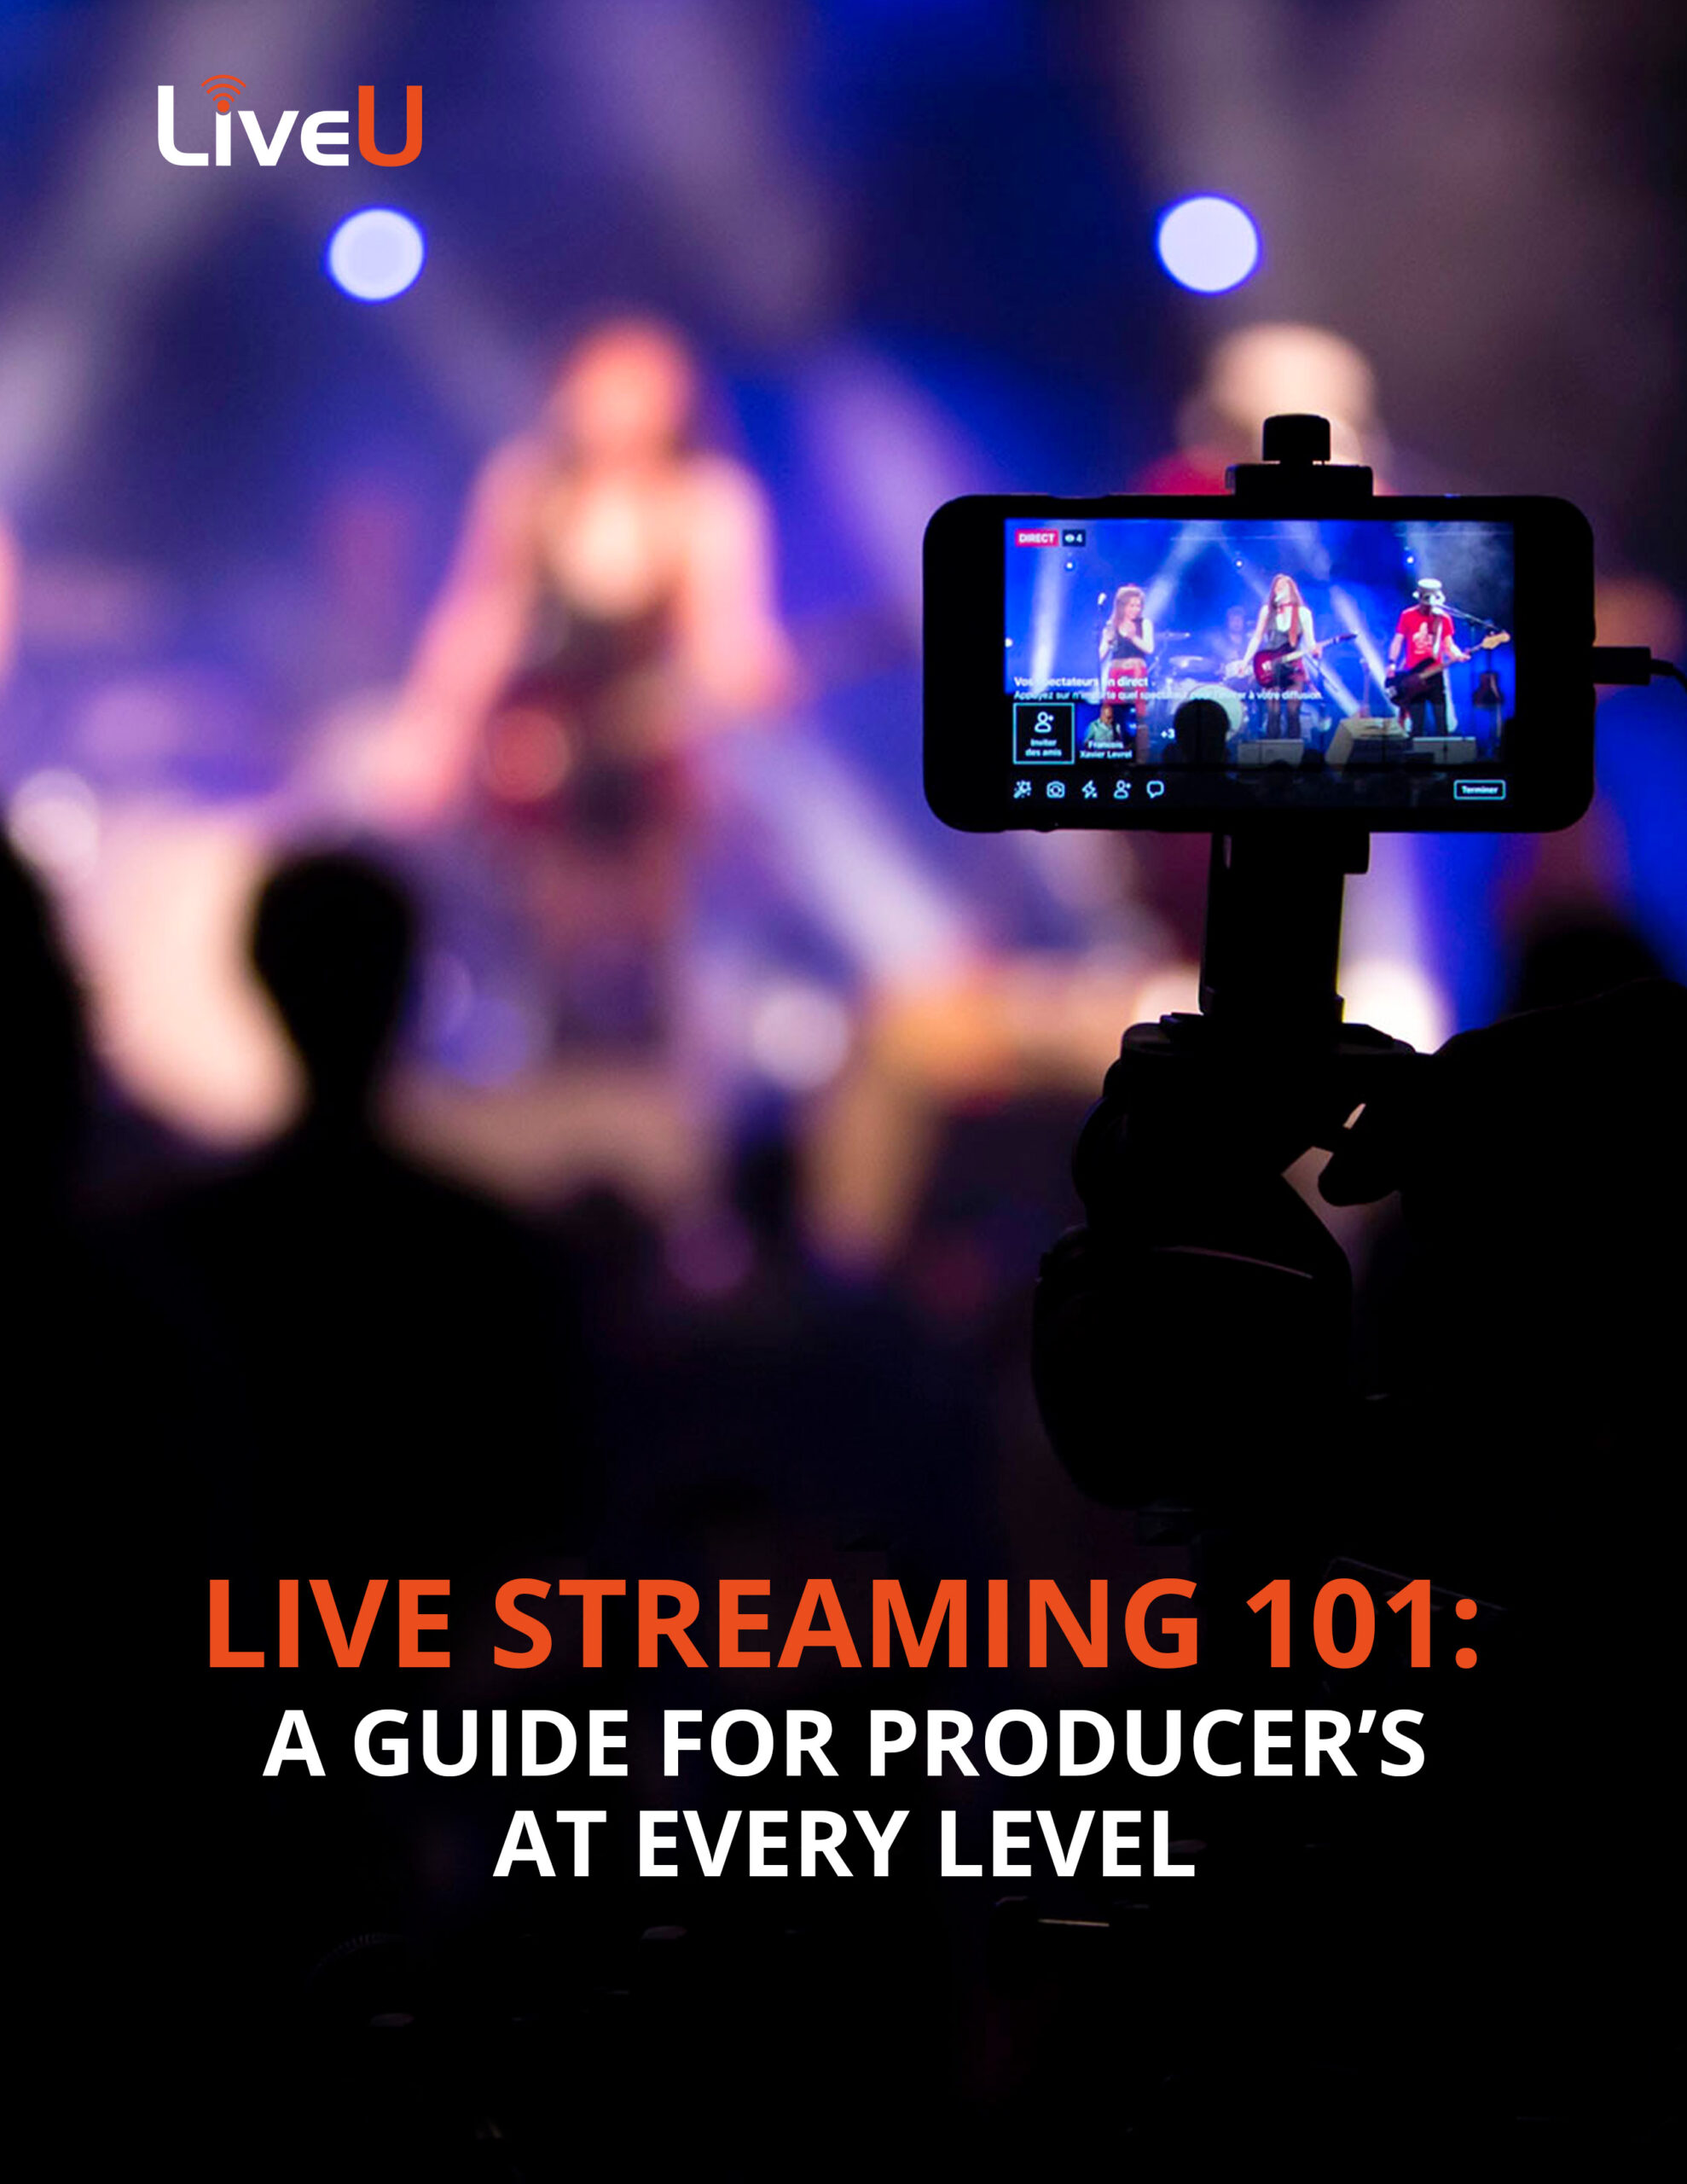 Live Streaming 101: A Guide for Producers at Every Level